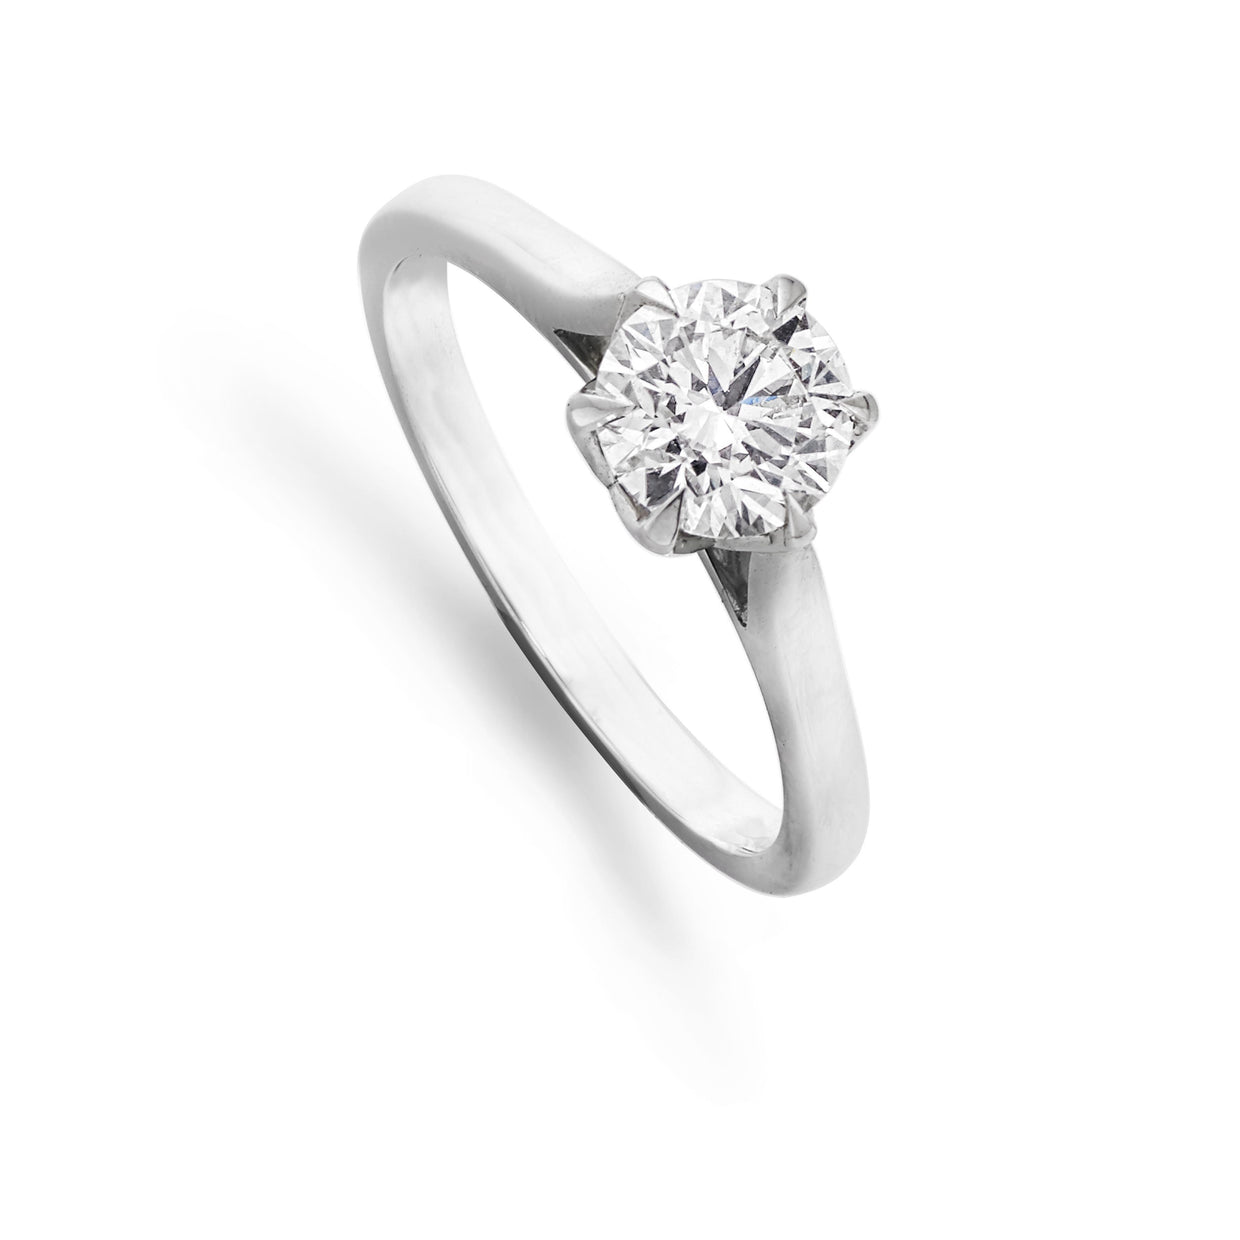 Diamond Solitaire Engagement Ring in Platinum Lotus Setting-Hamilton & Inches